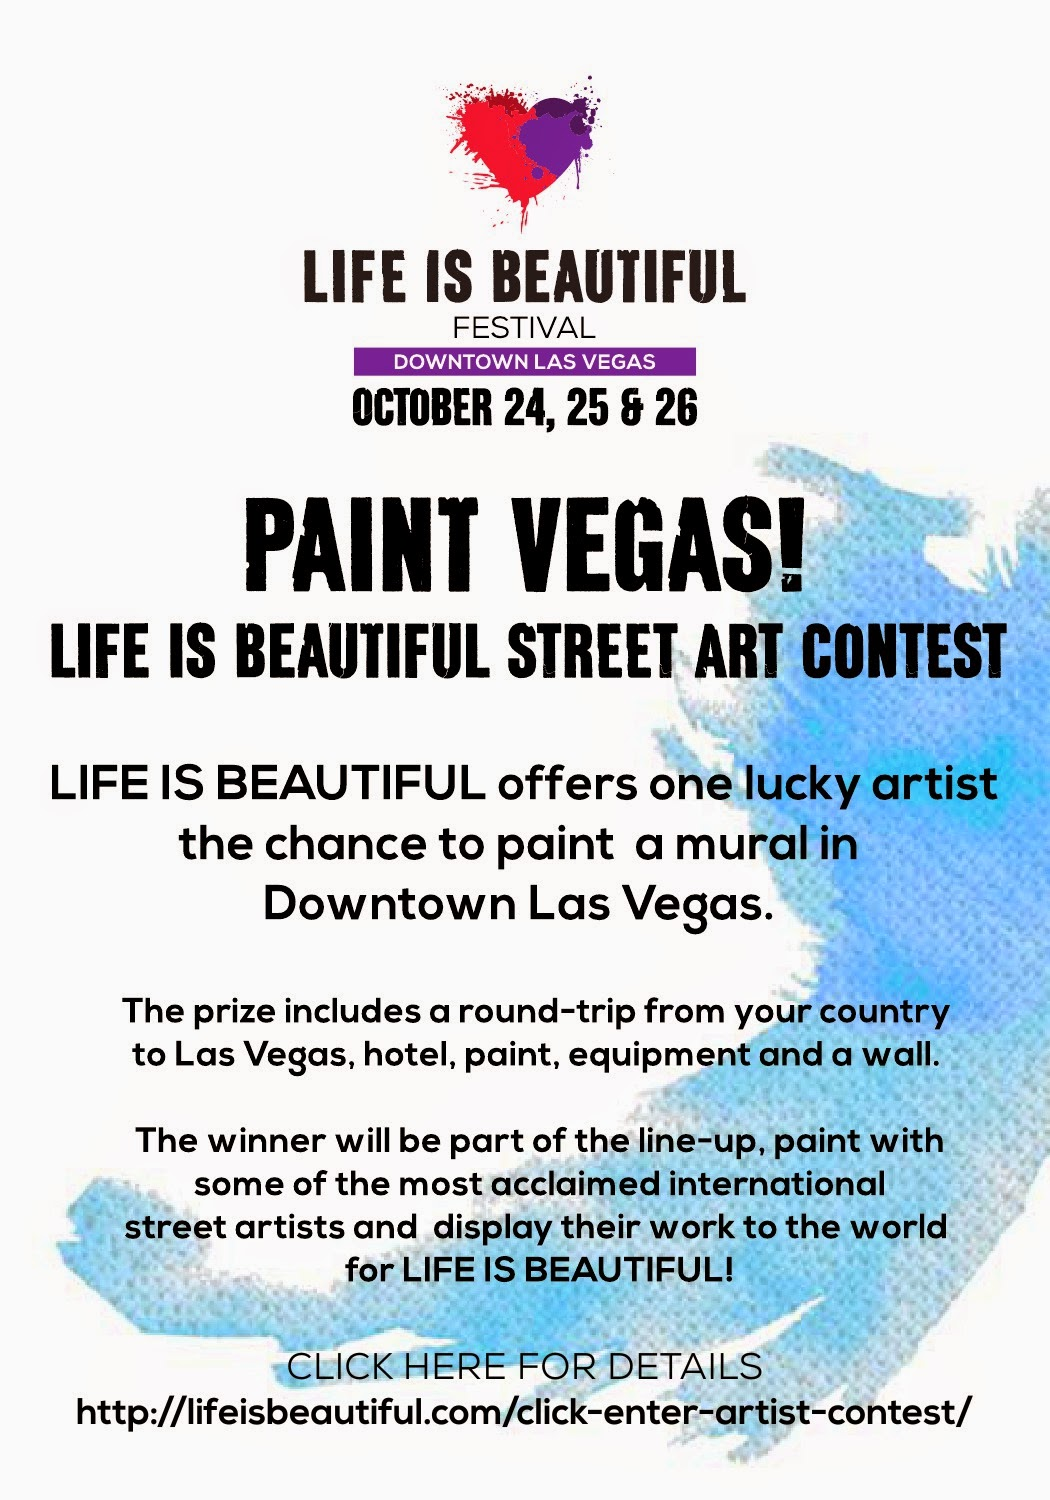 Life is Beautiful is currently accepting proposals from urban artists to participate in the festival street art program, which aims to turn 15 blocks of Downtown Las Vegas into an art-inspired playground showcasing works by some of the most recognized names in urban art.